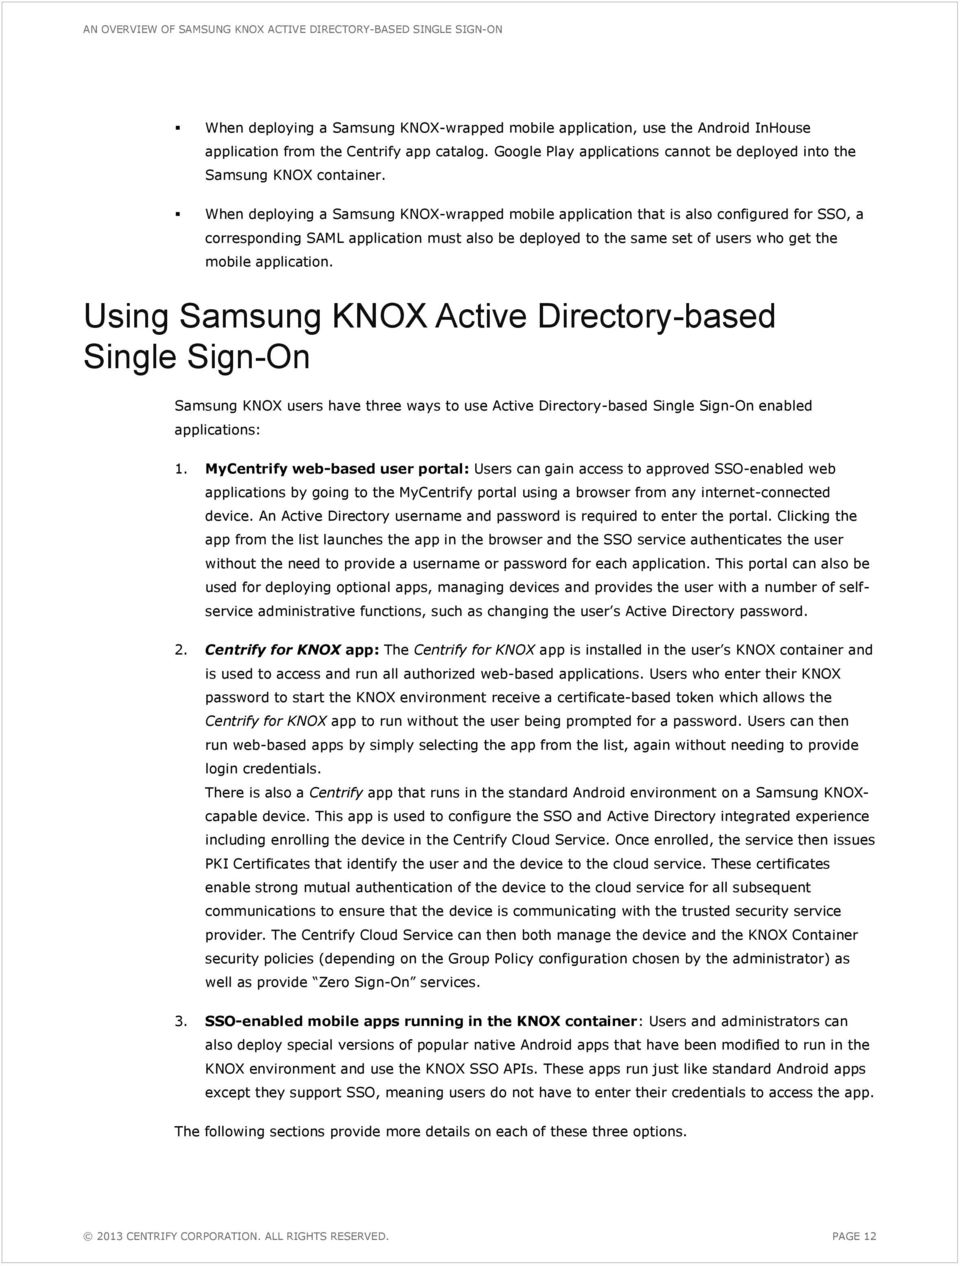 When deploying a Samsung KNOX-wrapped mobile application that is also configured for SSO, a corresponding SAML application must also be deployed to the same set of users who get the mobile